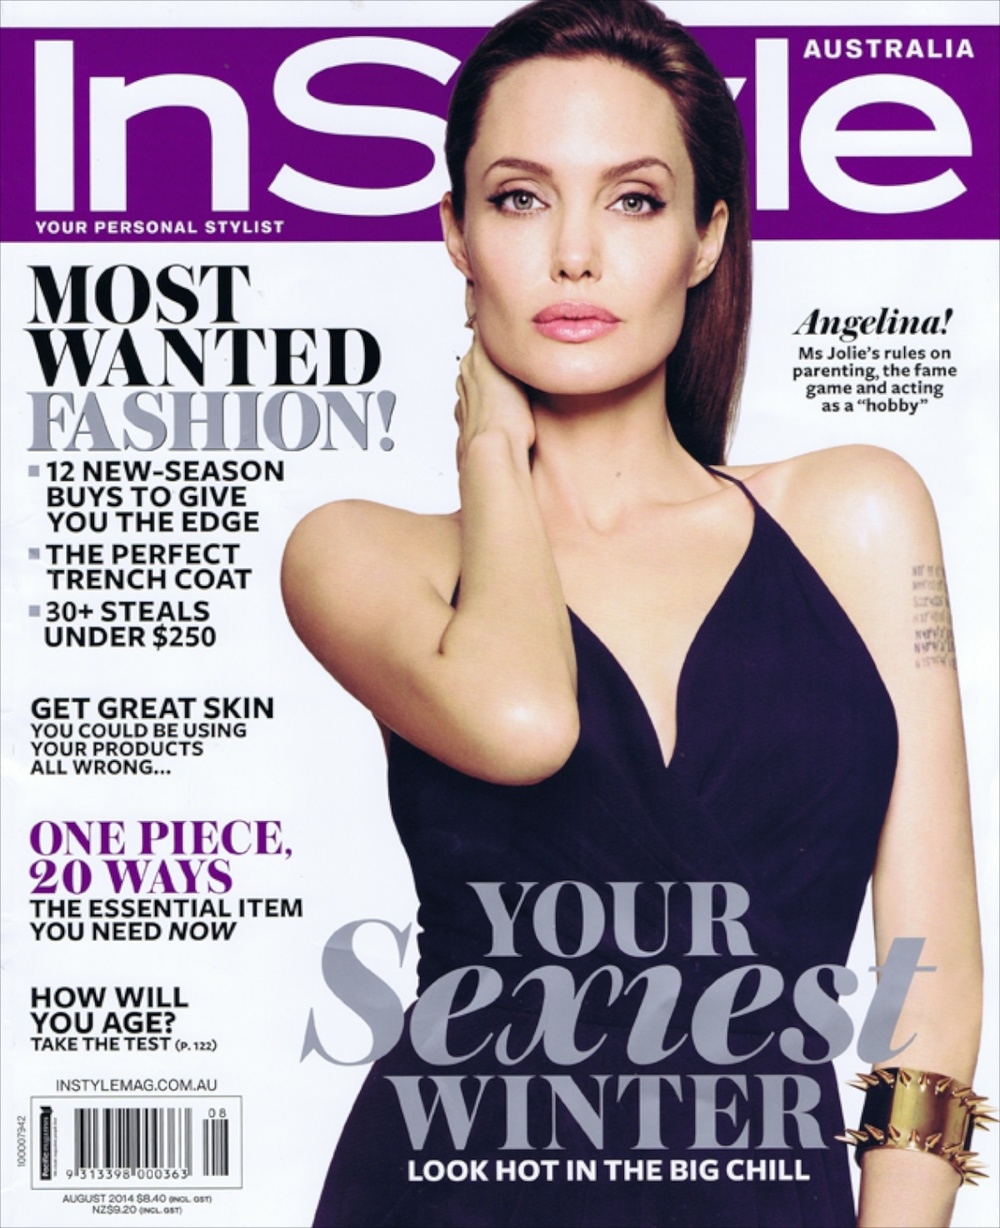 2014-AUGUST-INSTYLE-1@2x.jpg